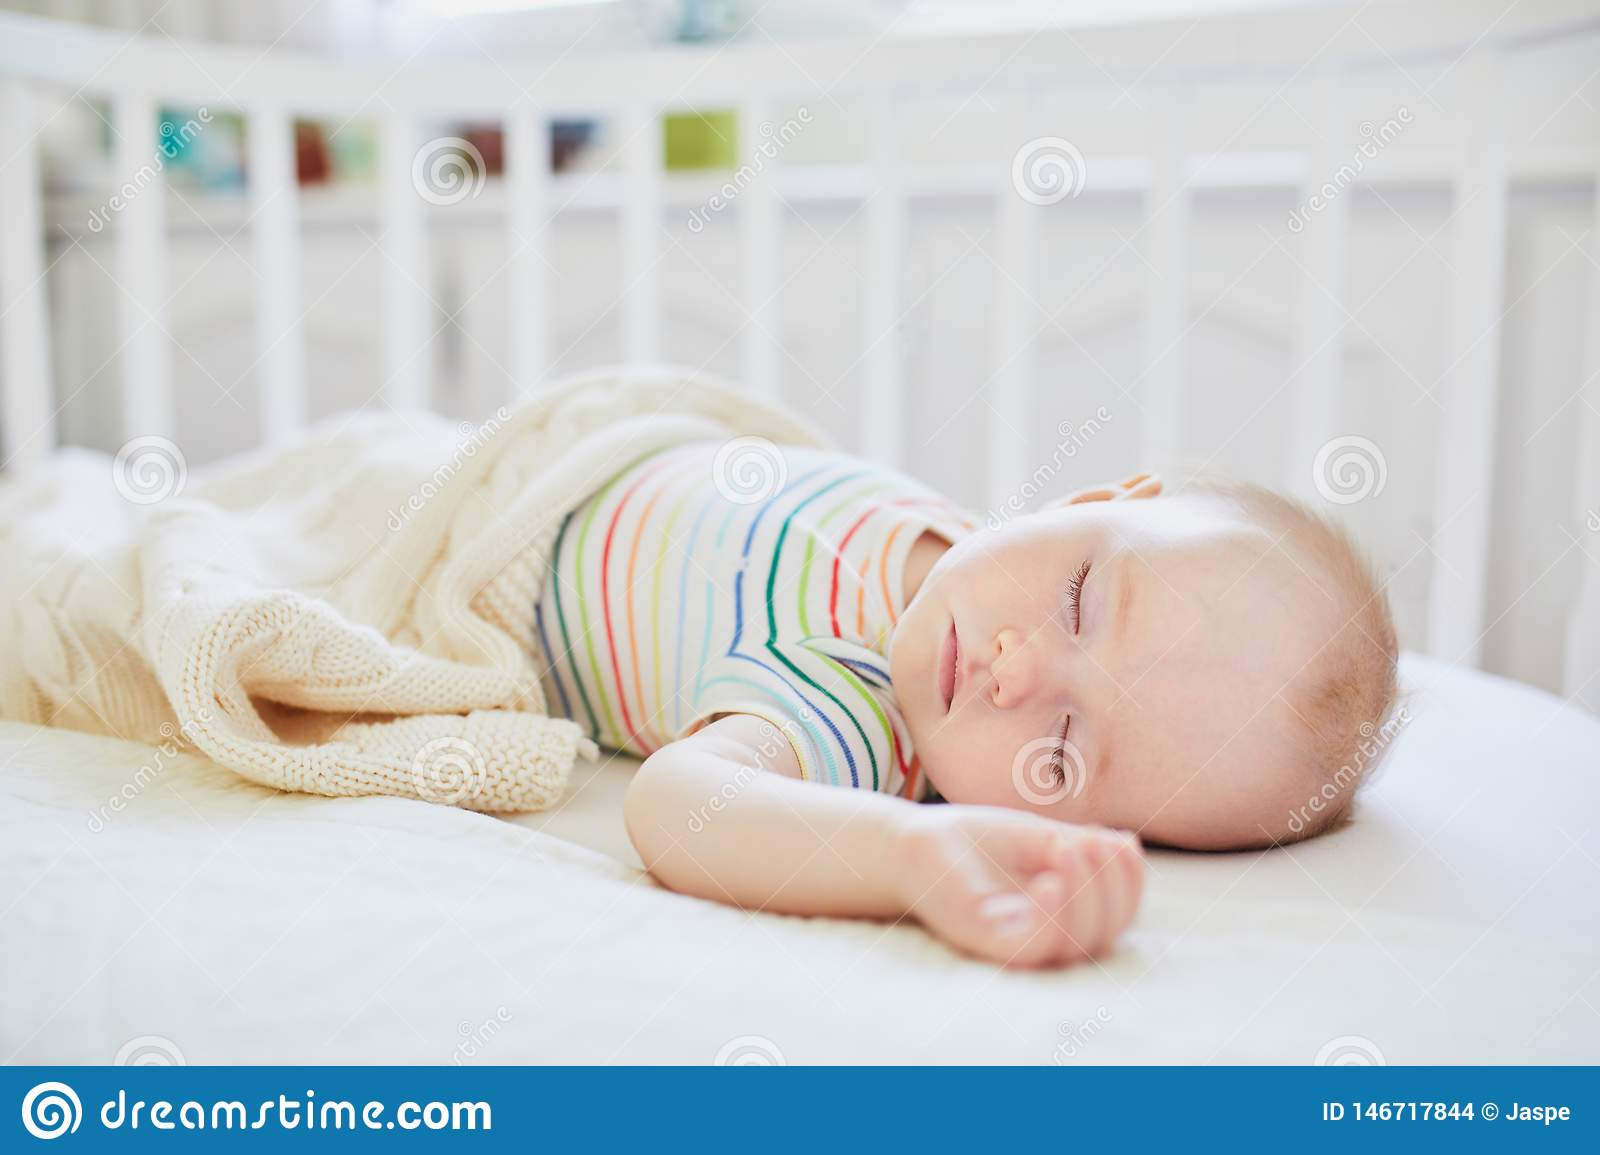 Baby Cots That Attach To Beds Baby Sleeping In Co Sleeper Crib Attached To Parents Bed